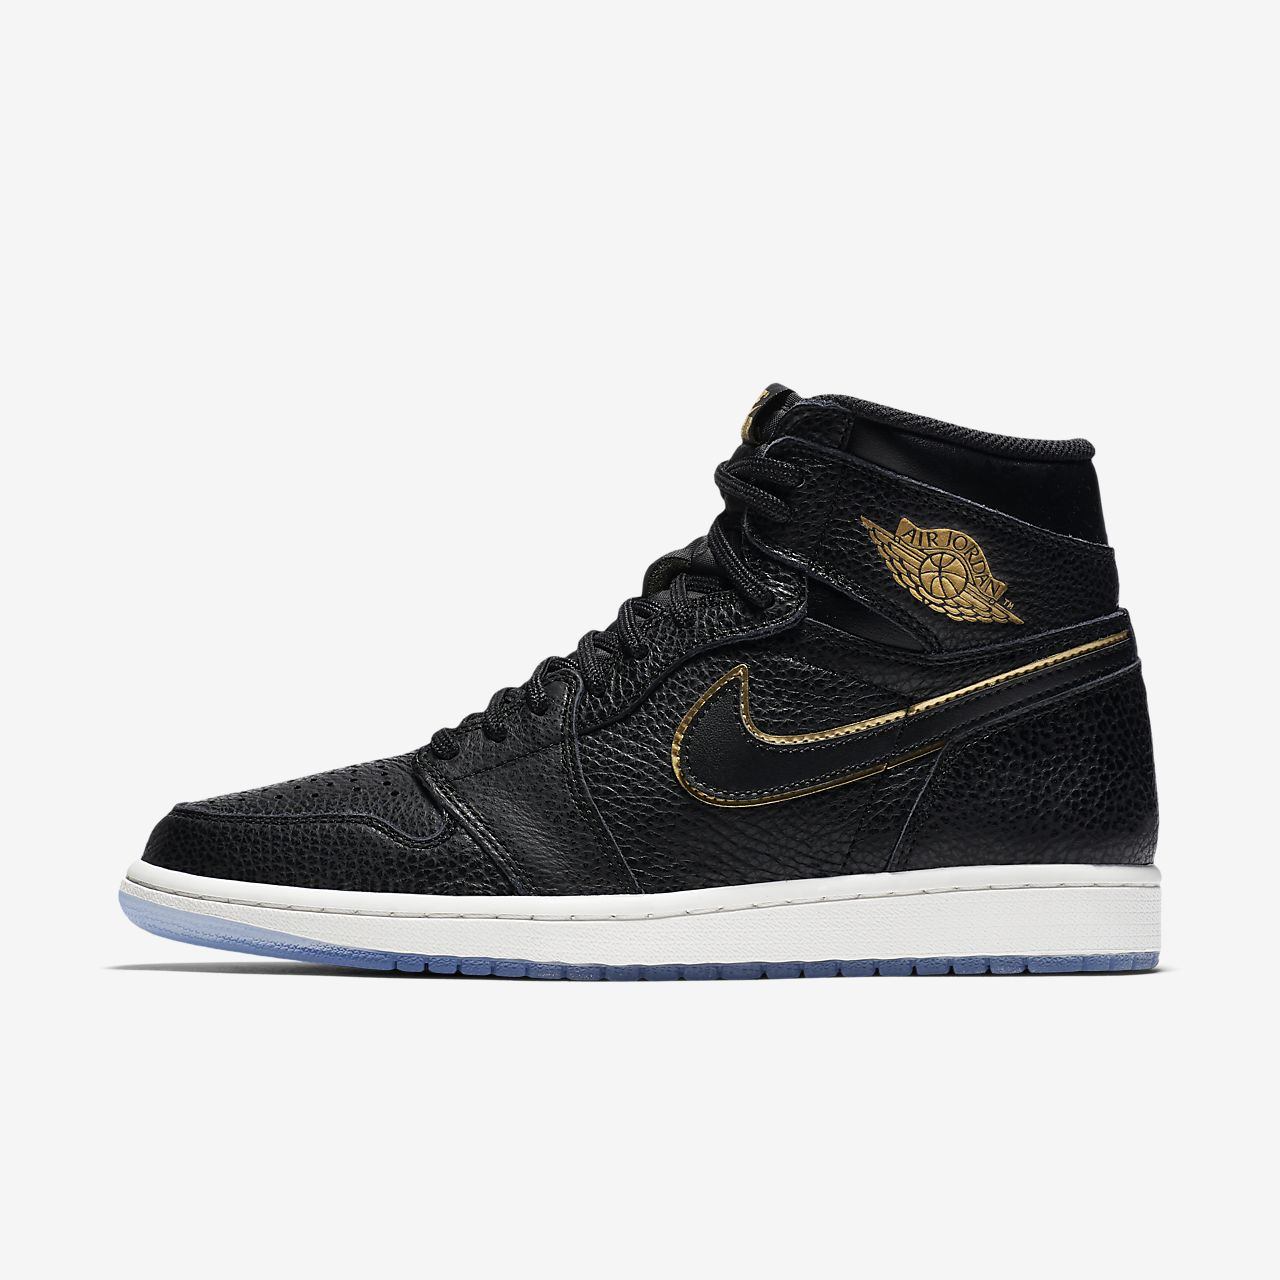 new concept 59227 0c89c Shoe. Air Jordan 1 Retro High OG